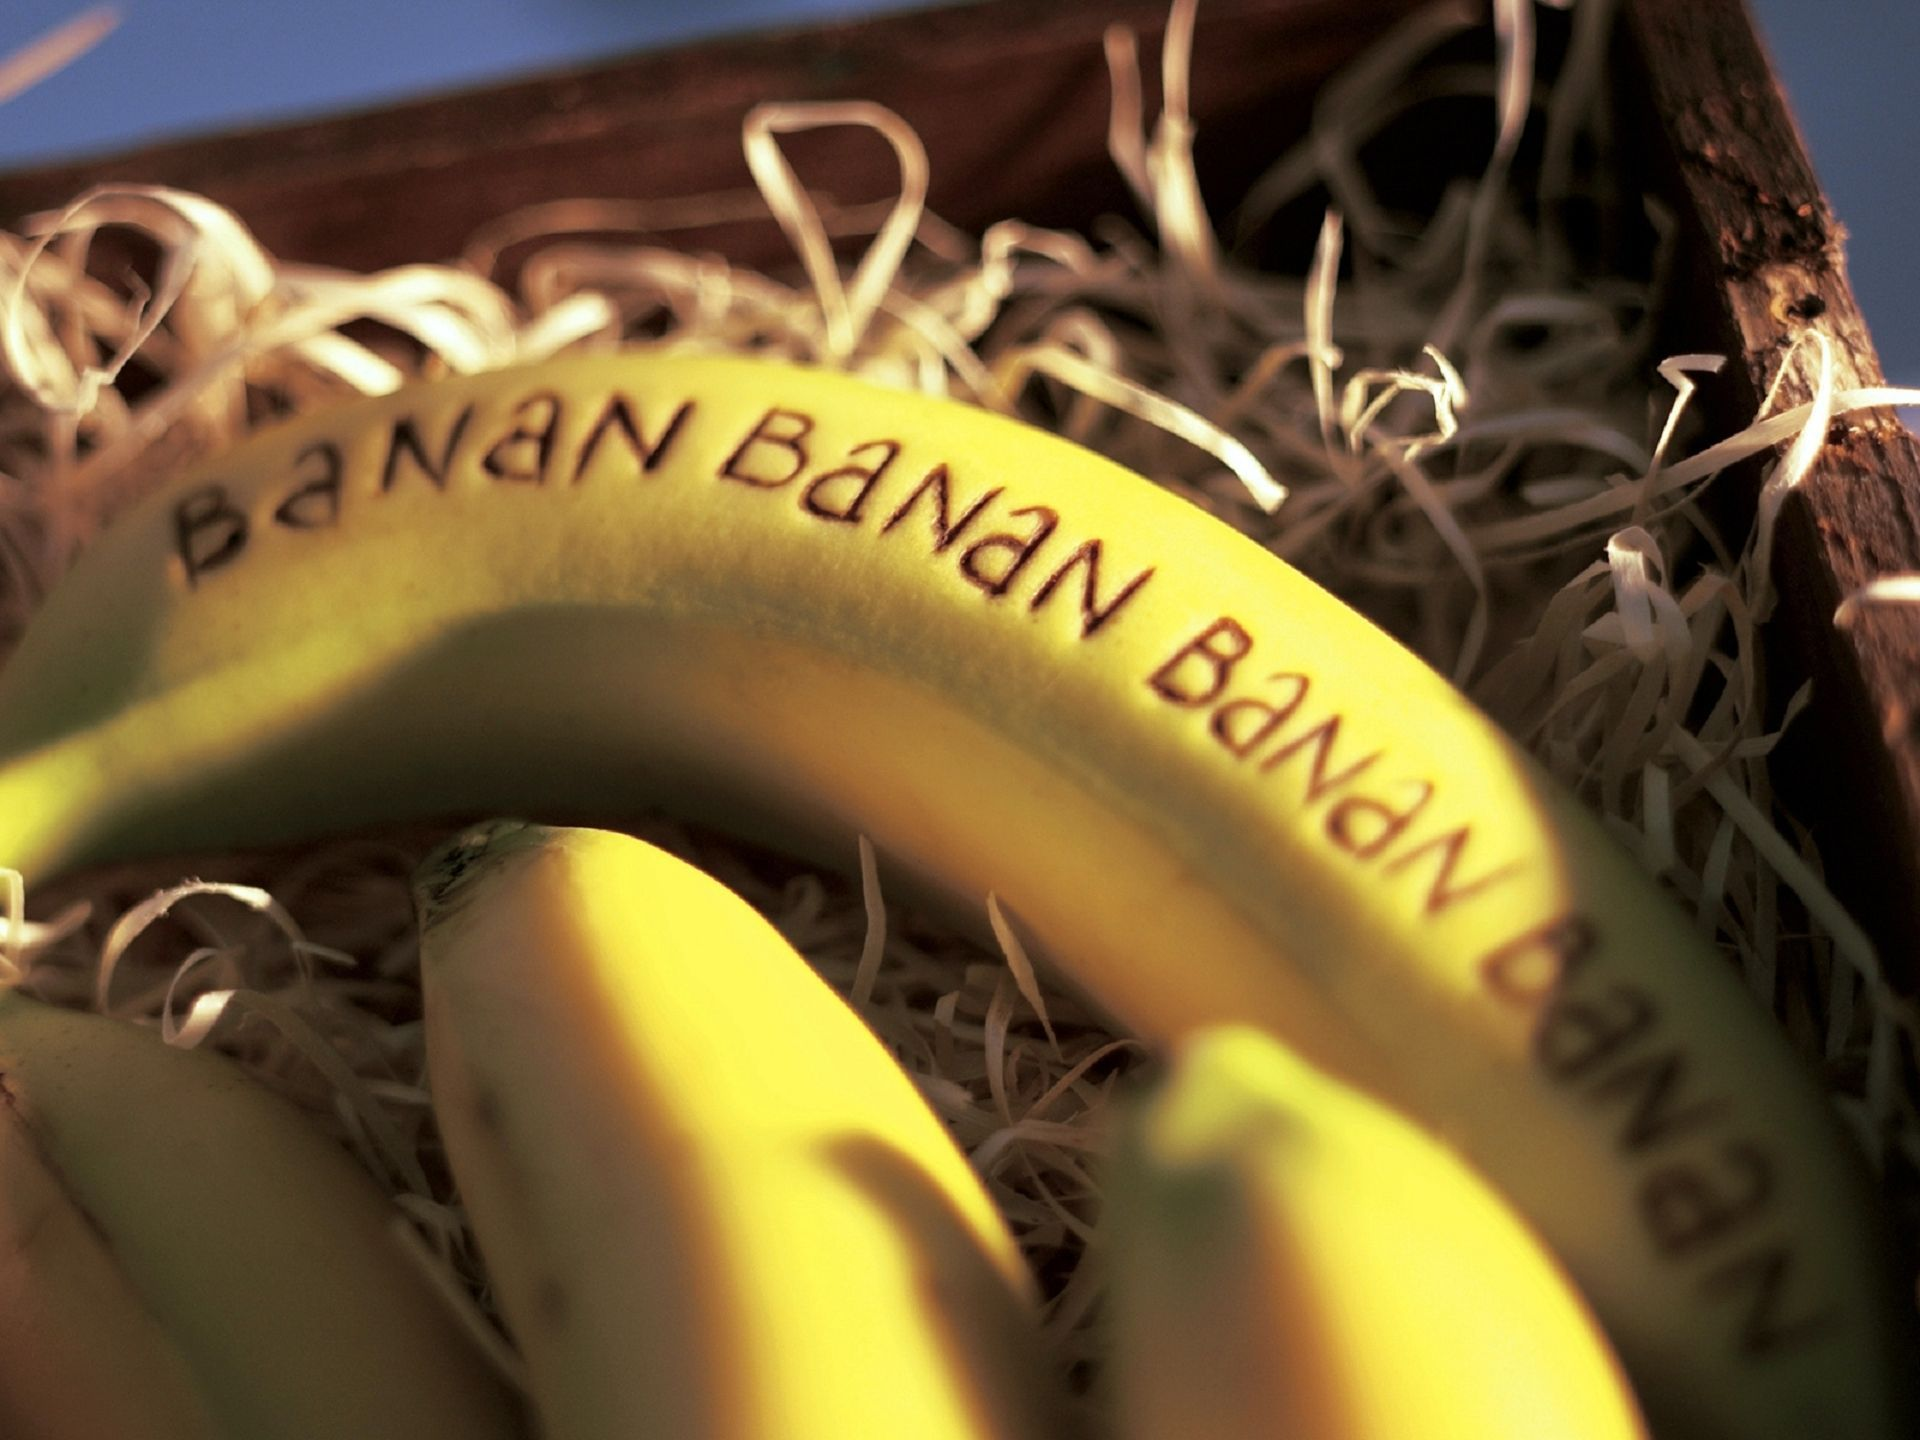 Bananas HD Wallpaper